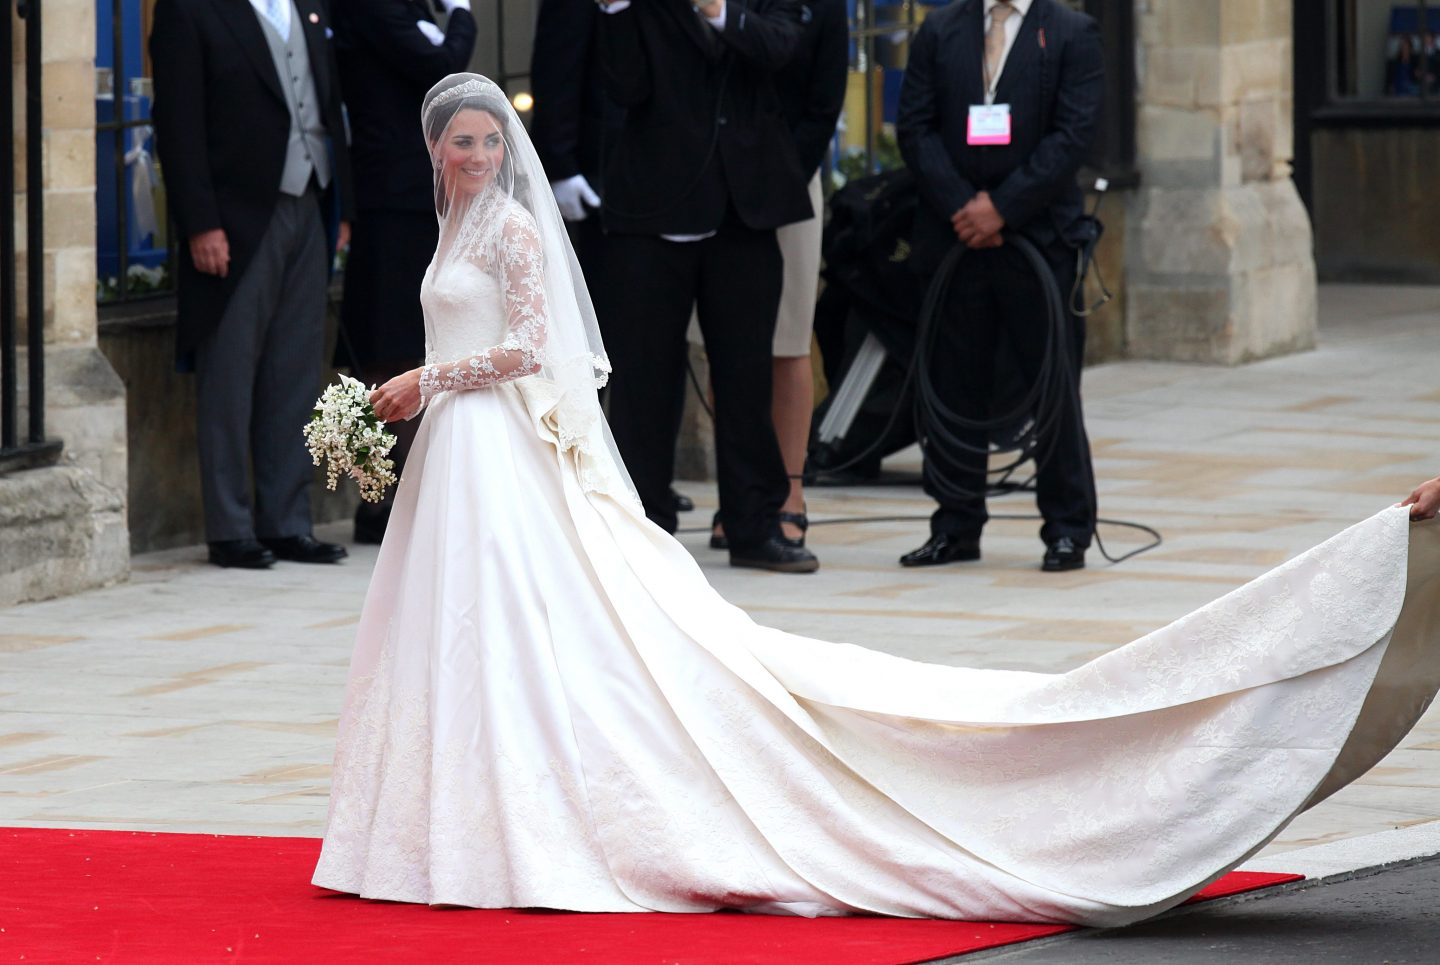 Princess Catherine's wedding dress displayed in Buckingham Palace